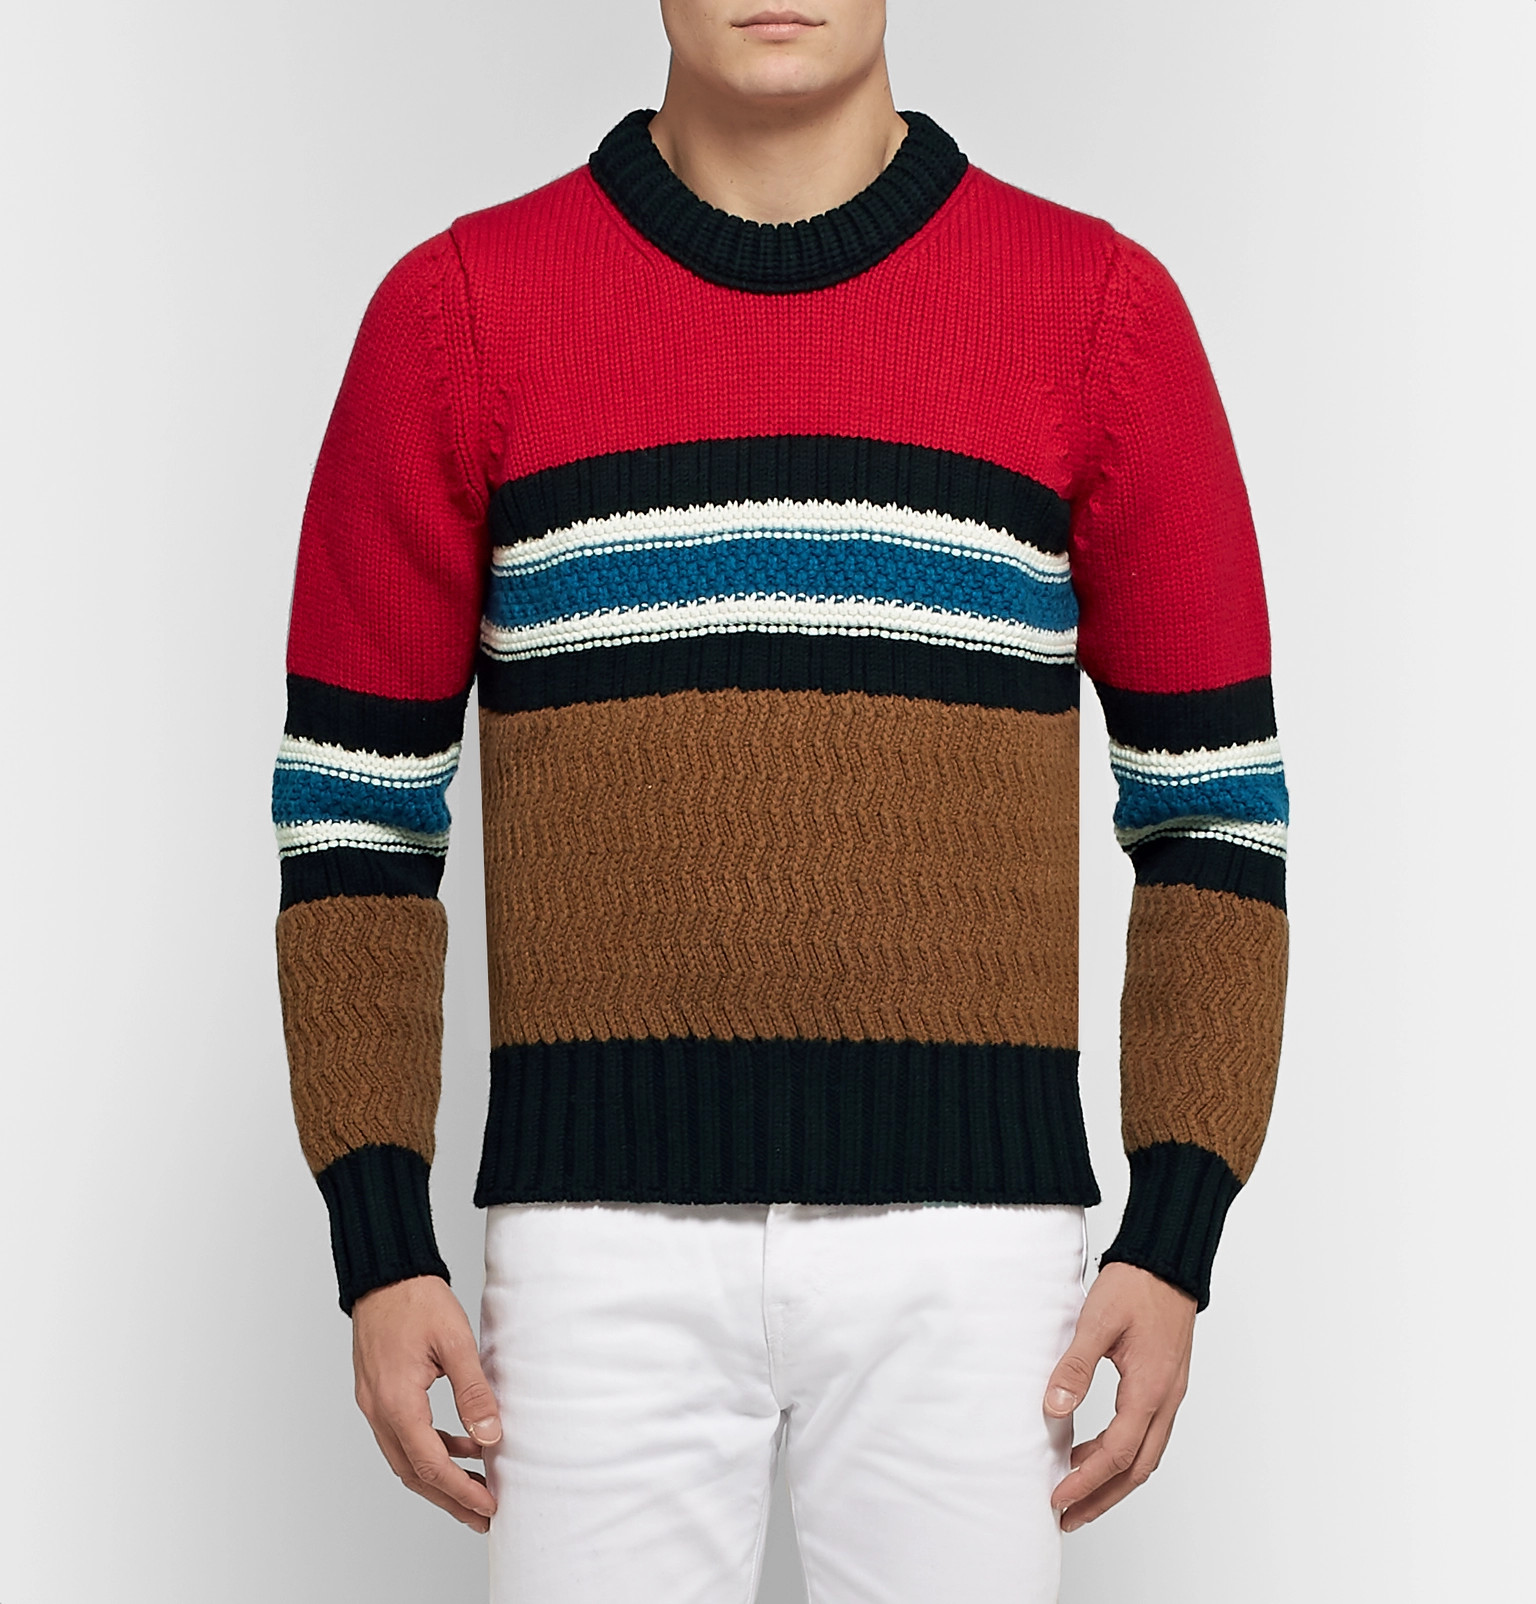 And Blend Burberry Sweater Wool Cashmere Striped qqwT0g